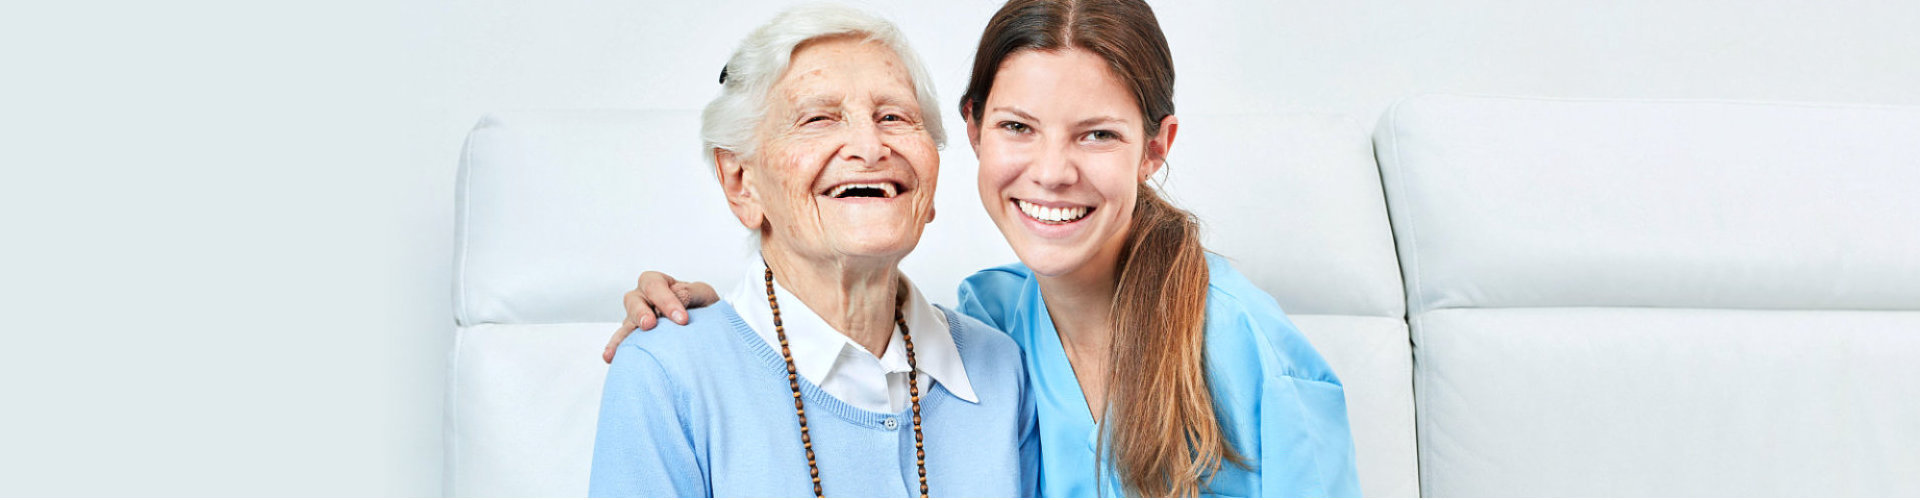 lady caregiver and old woman smiling